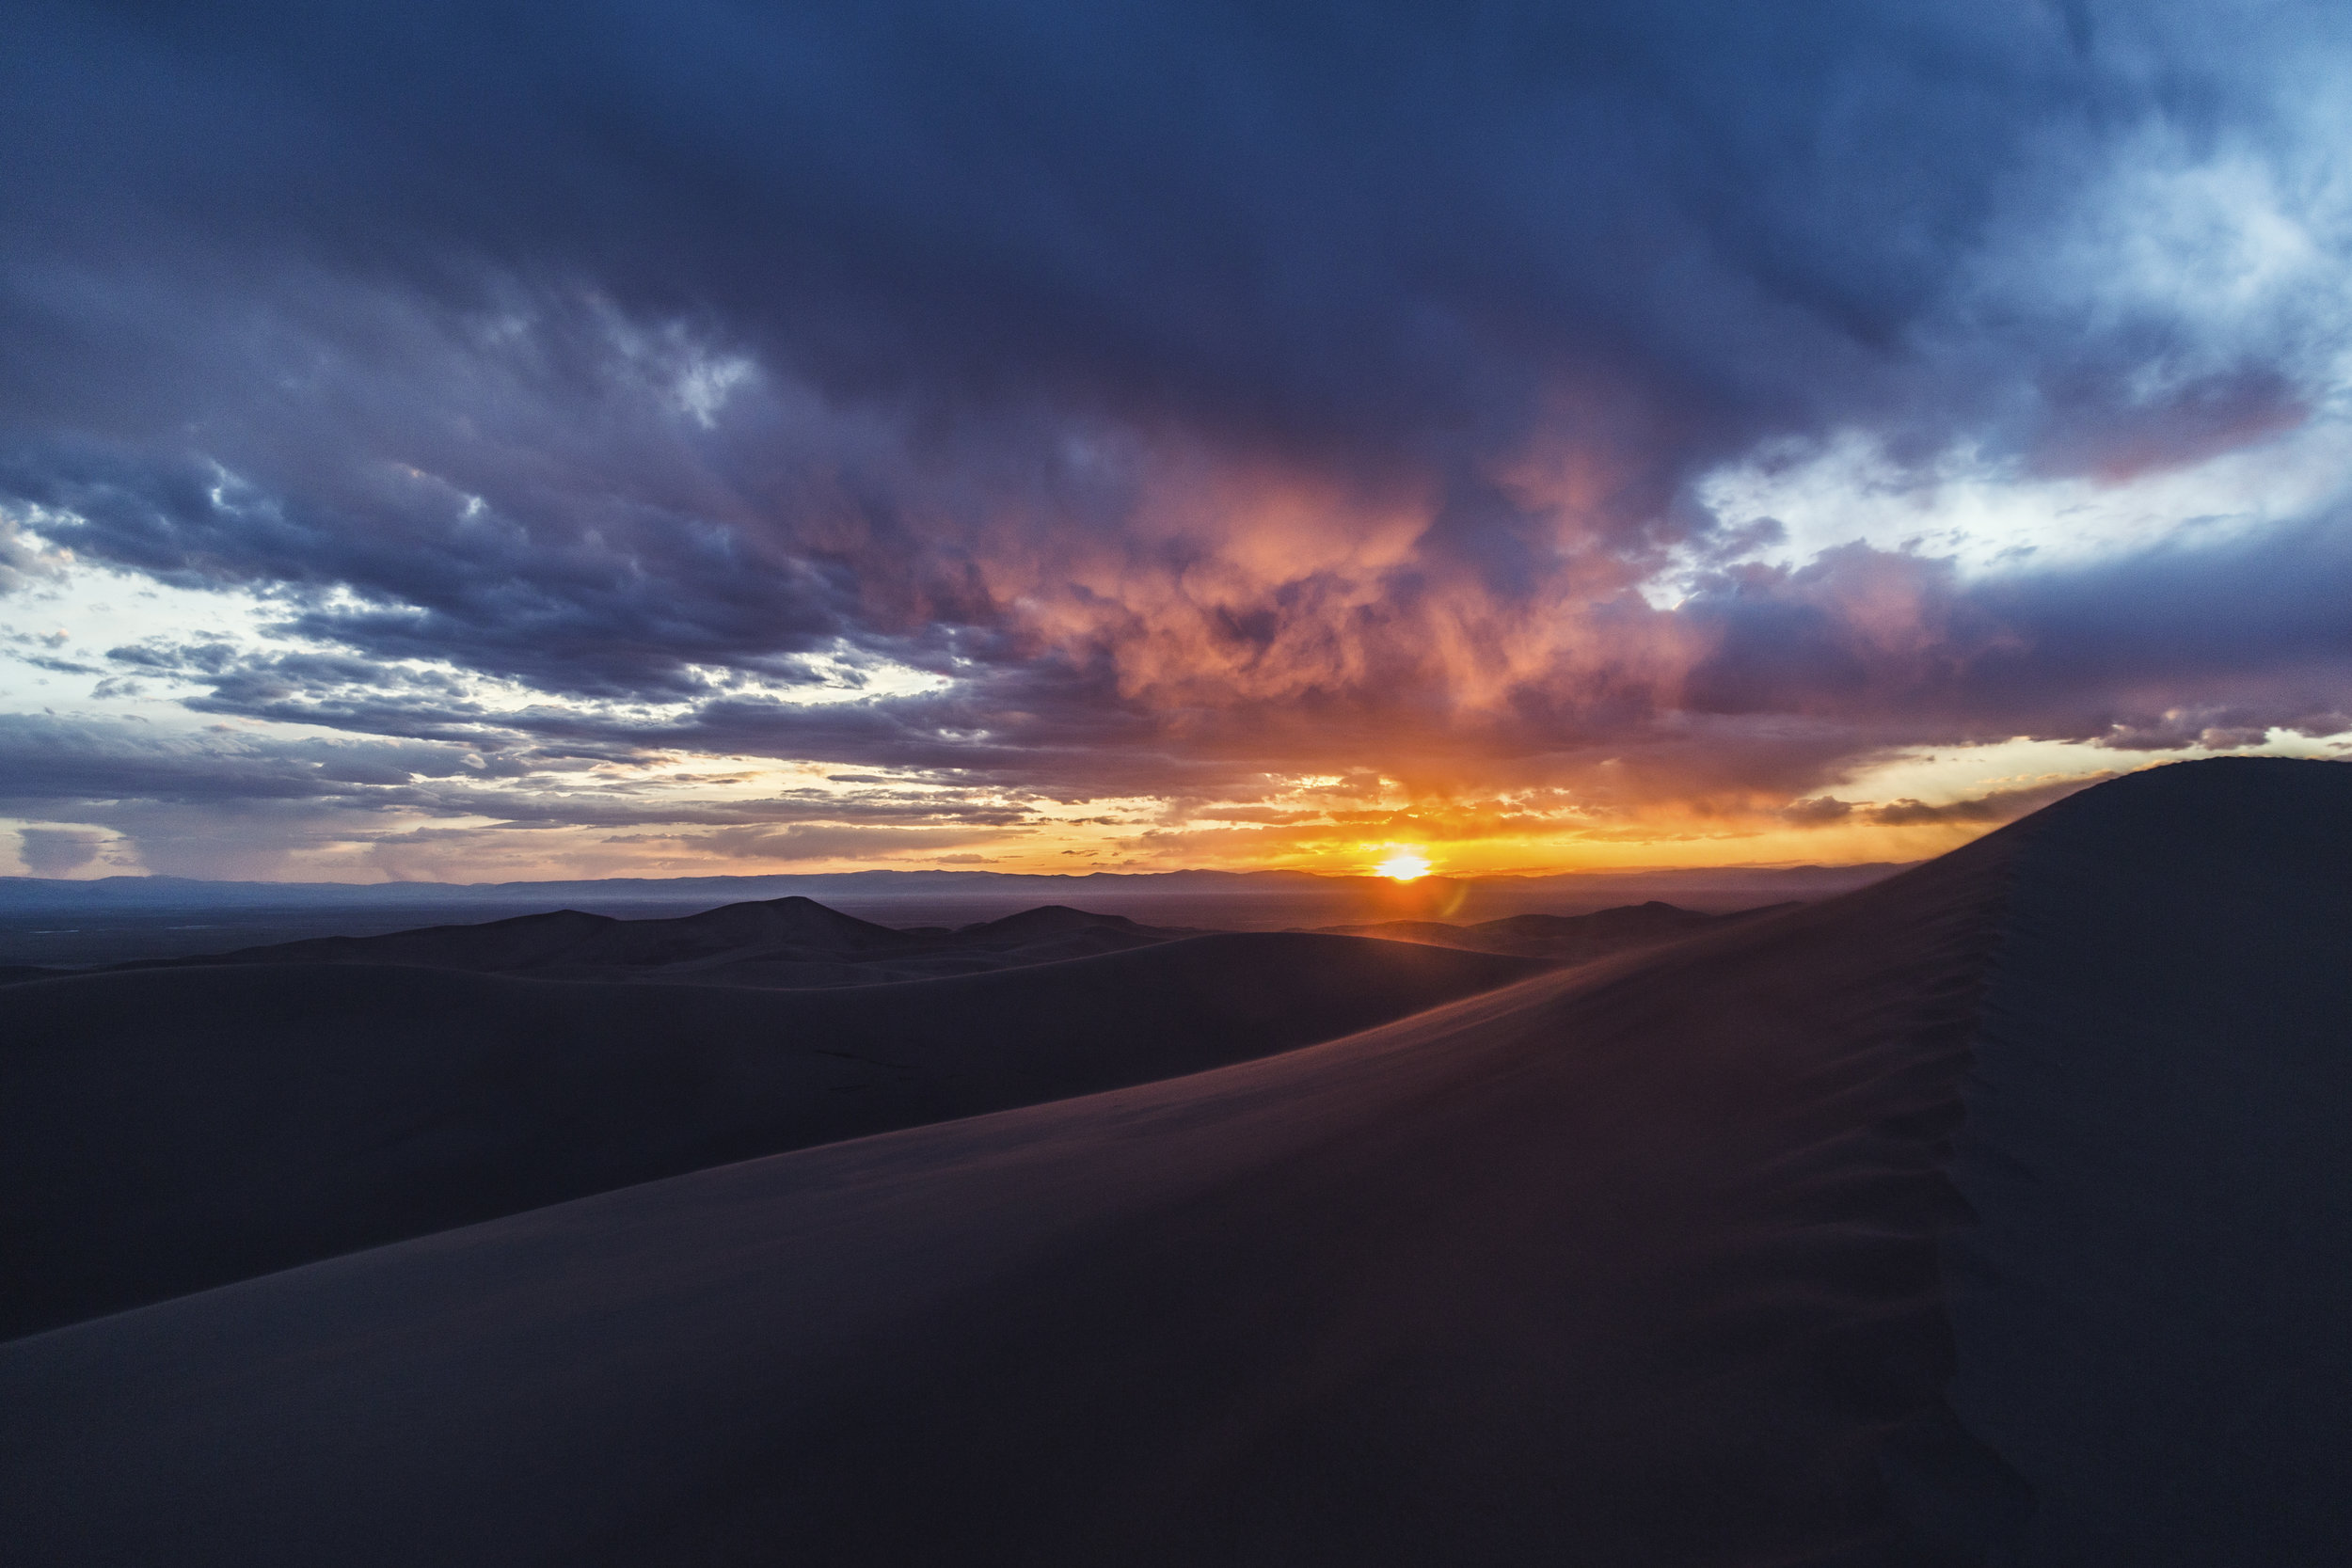 Sunset at the Dunes